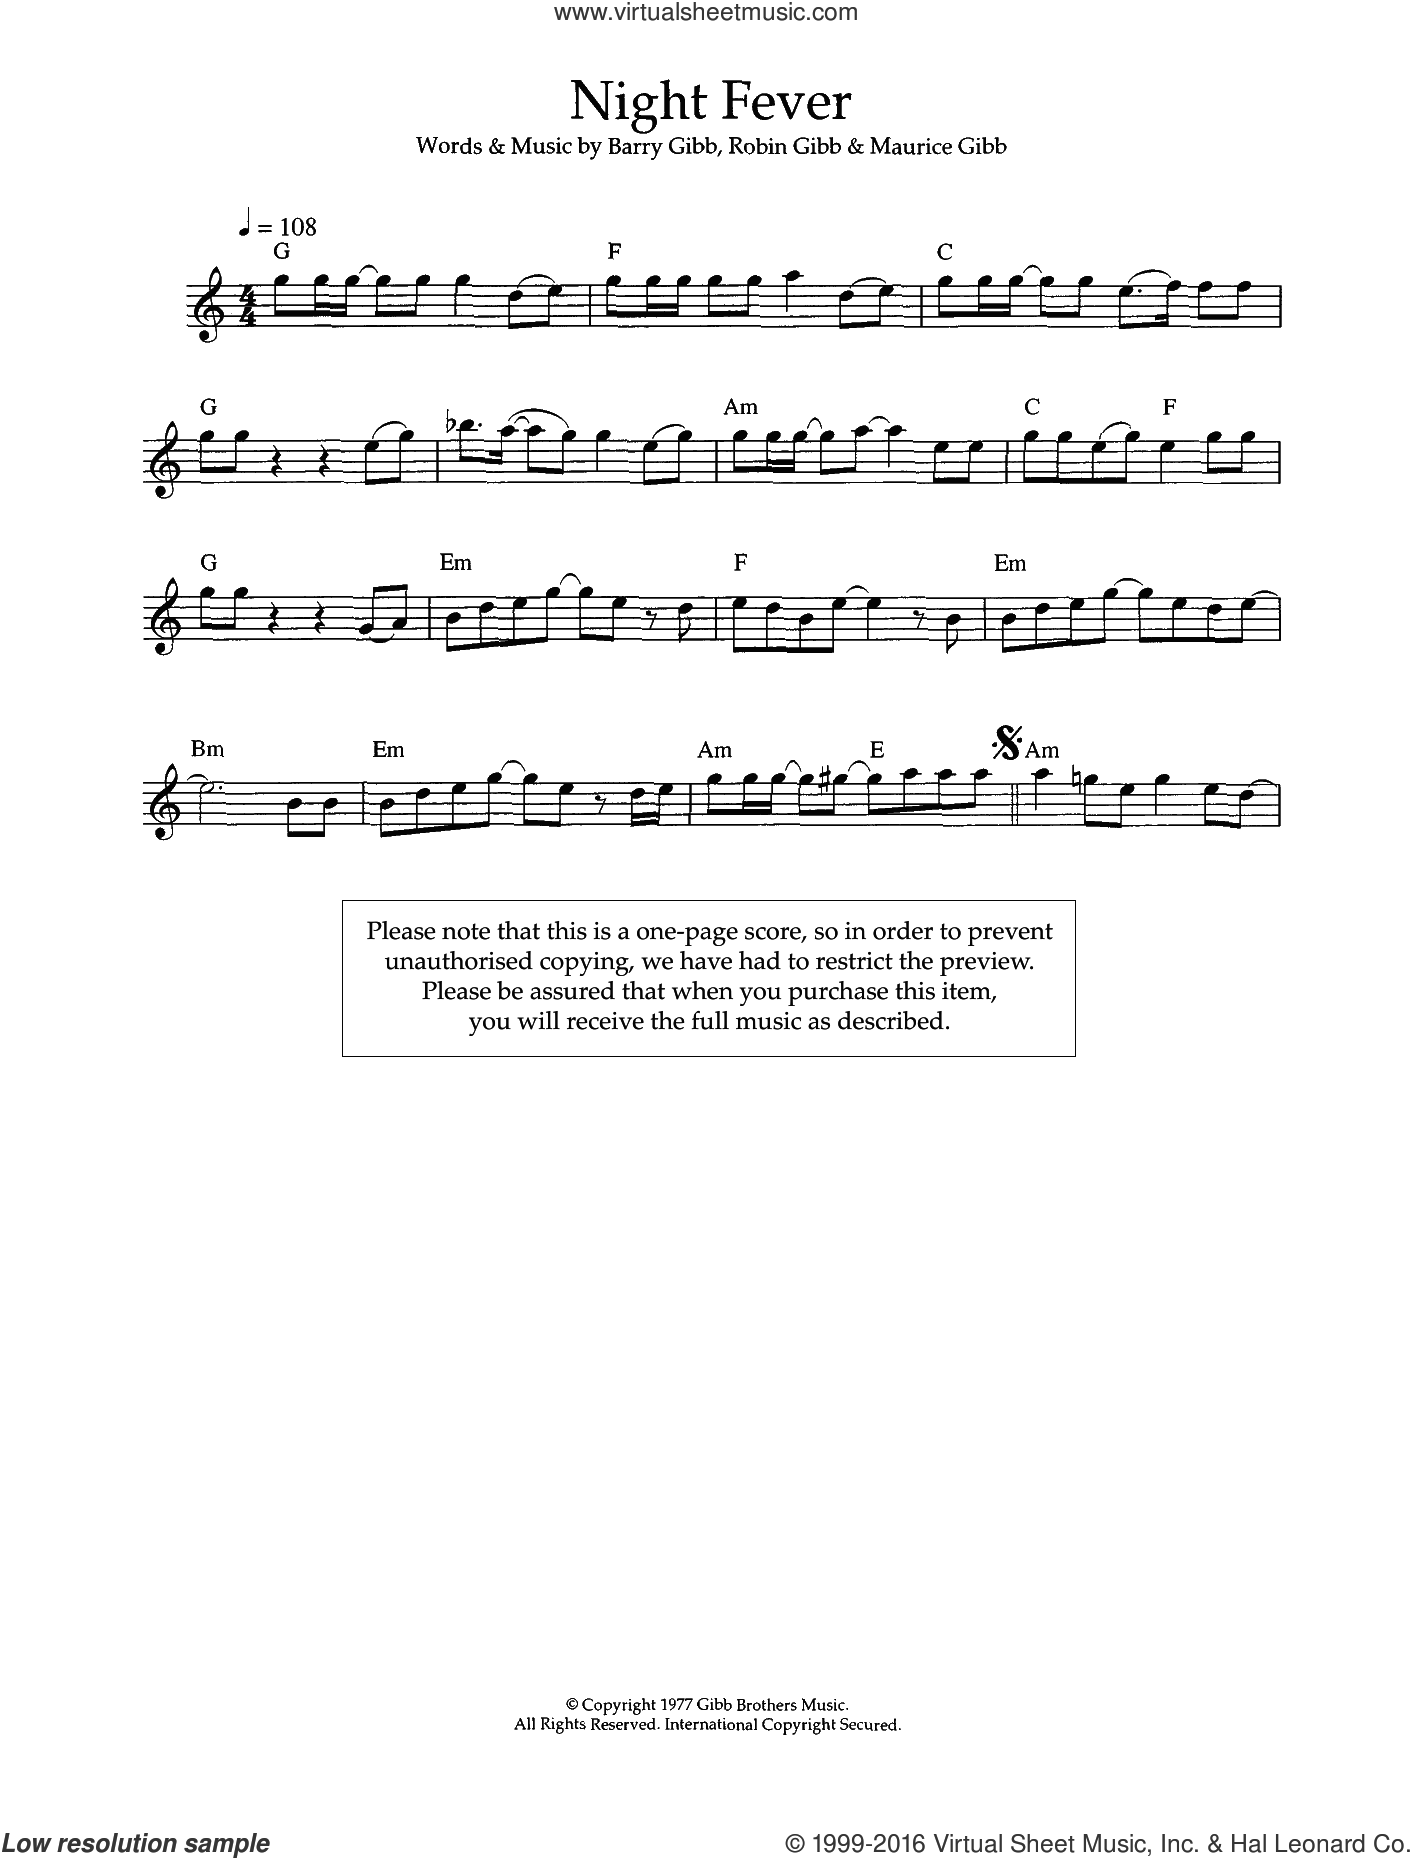 Night Fever sheet music for voice and other instruments (fake book) by Bee Gees, Barry Gibb, Maurice Gibb and Robin Gibb, intermediate skill level